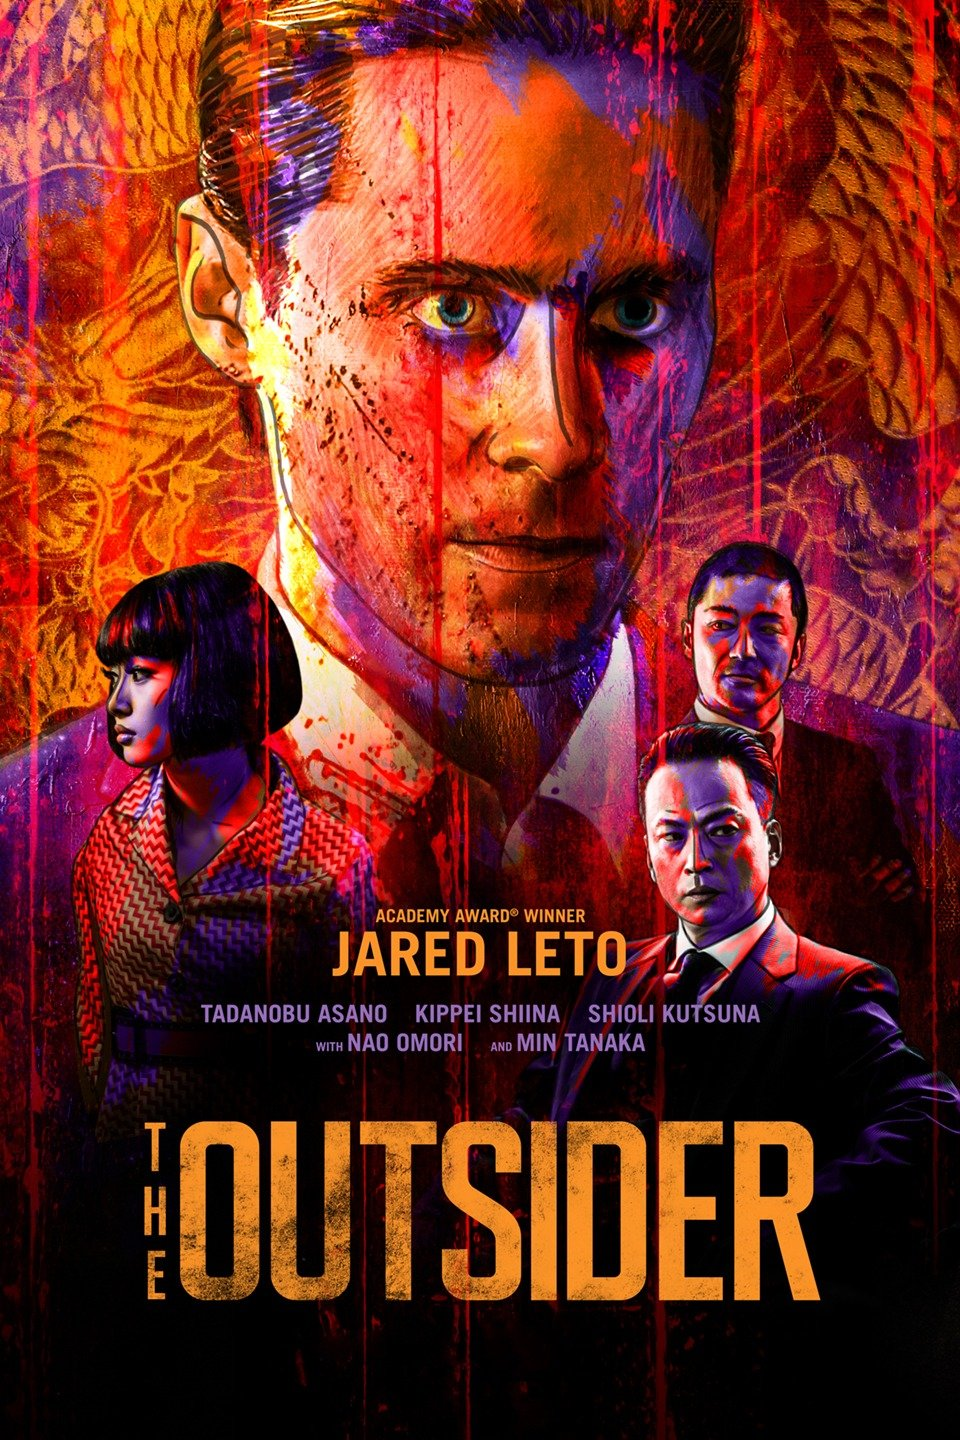 The Outsider (2018) - Directed by: Martin ZandvlietStarring: Jared Leto, Tandanobu Asano, Kippei ShinaRated: TV-MARunning Time: 2 hTMM Score: 2 stars out of 5STRENGTHS: Set Design, CinematographyWEAKNESSES: Predictability, White Savior Complex